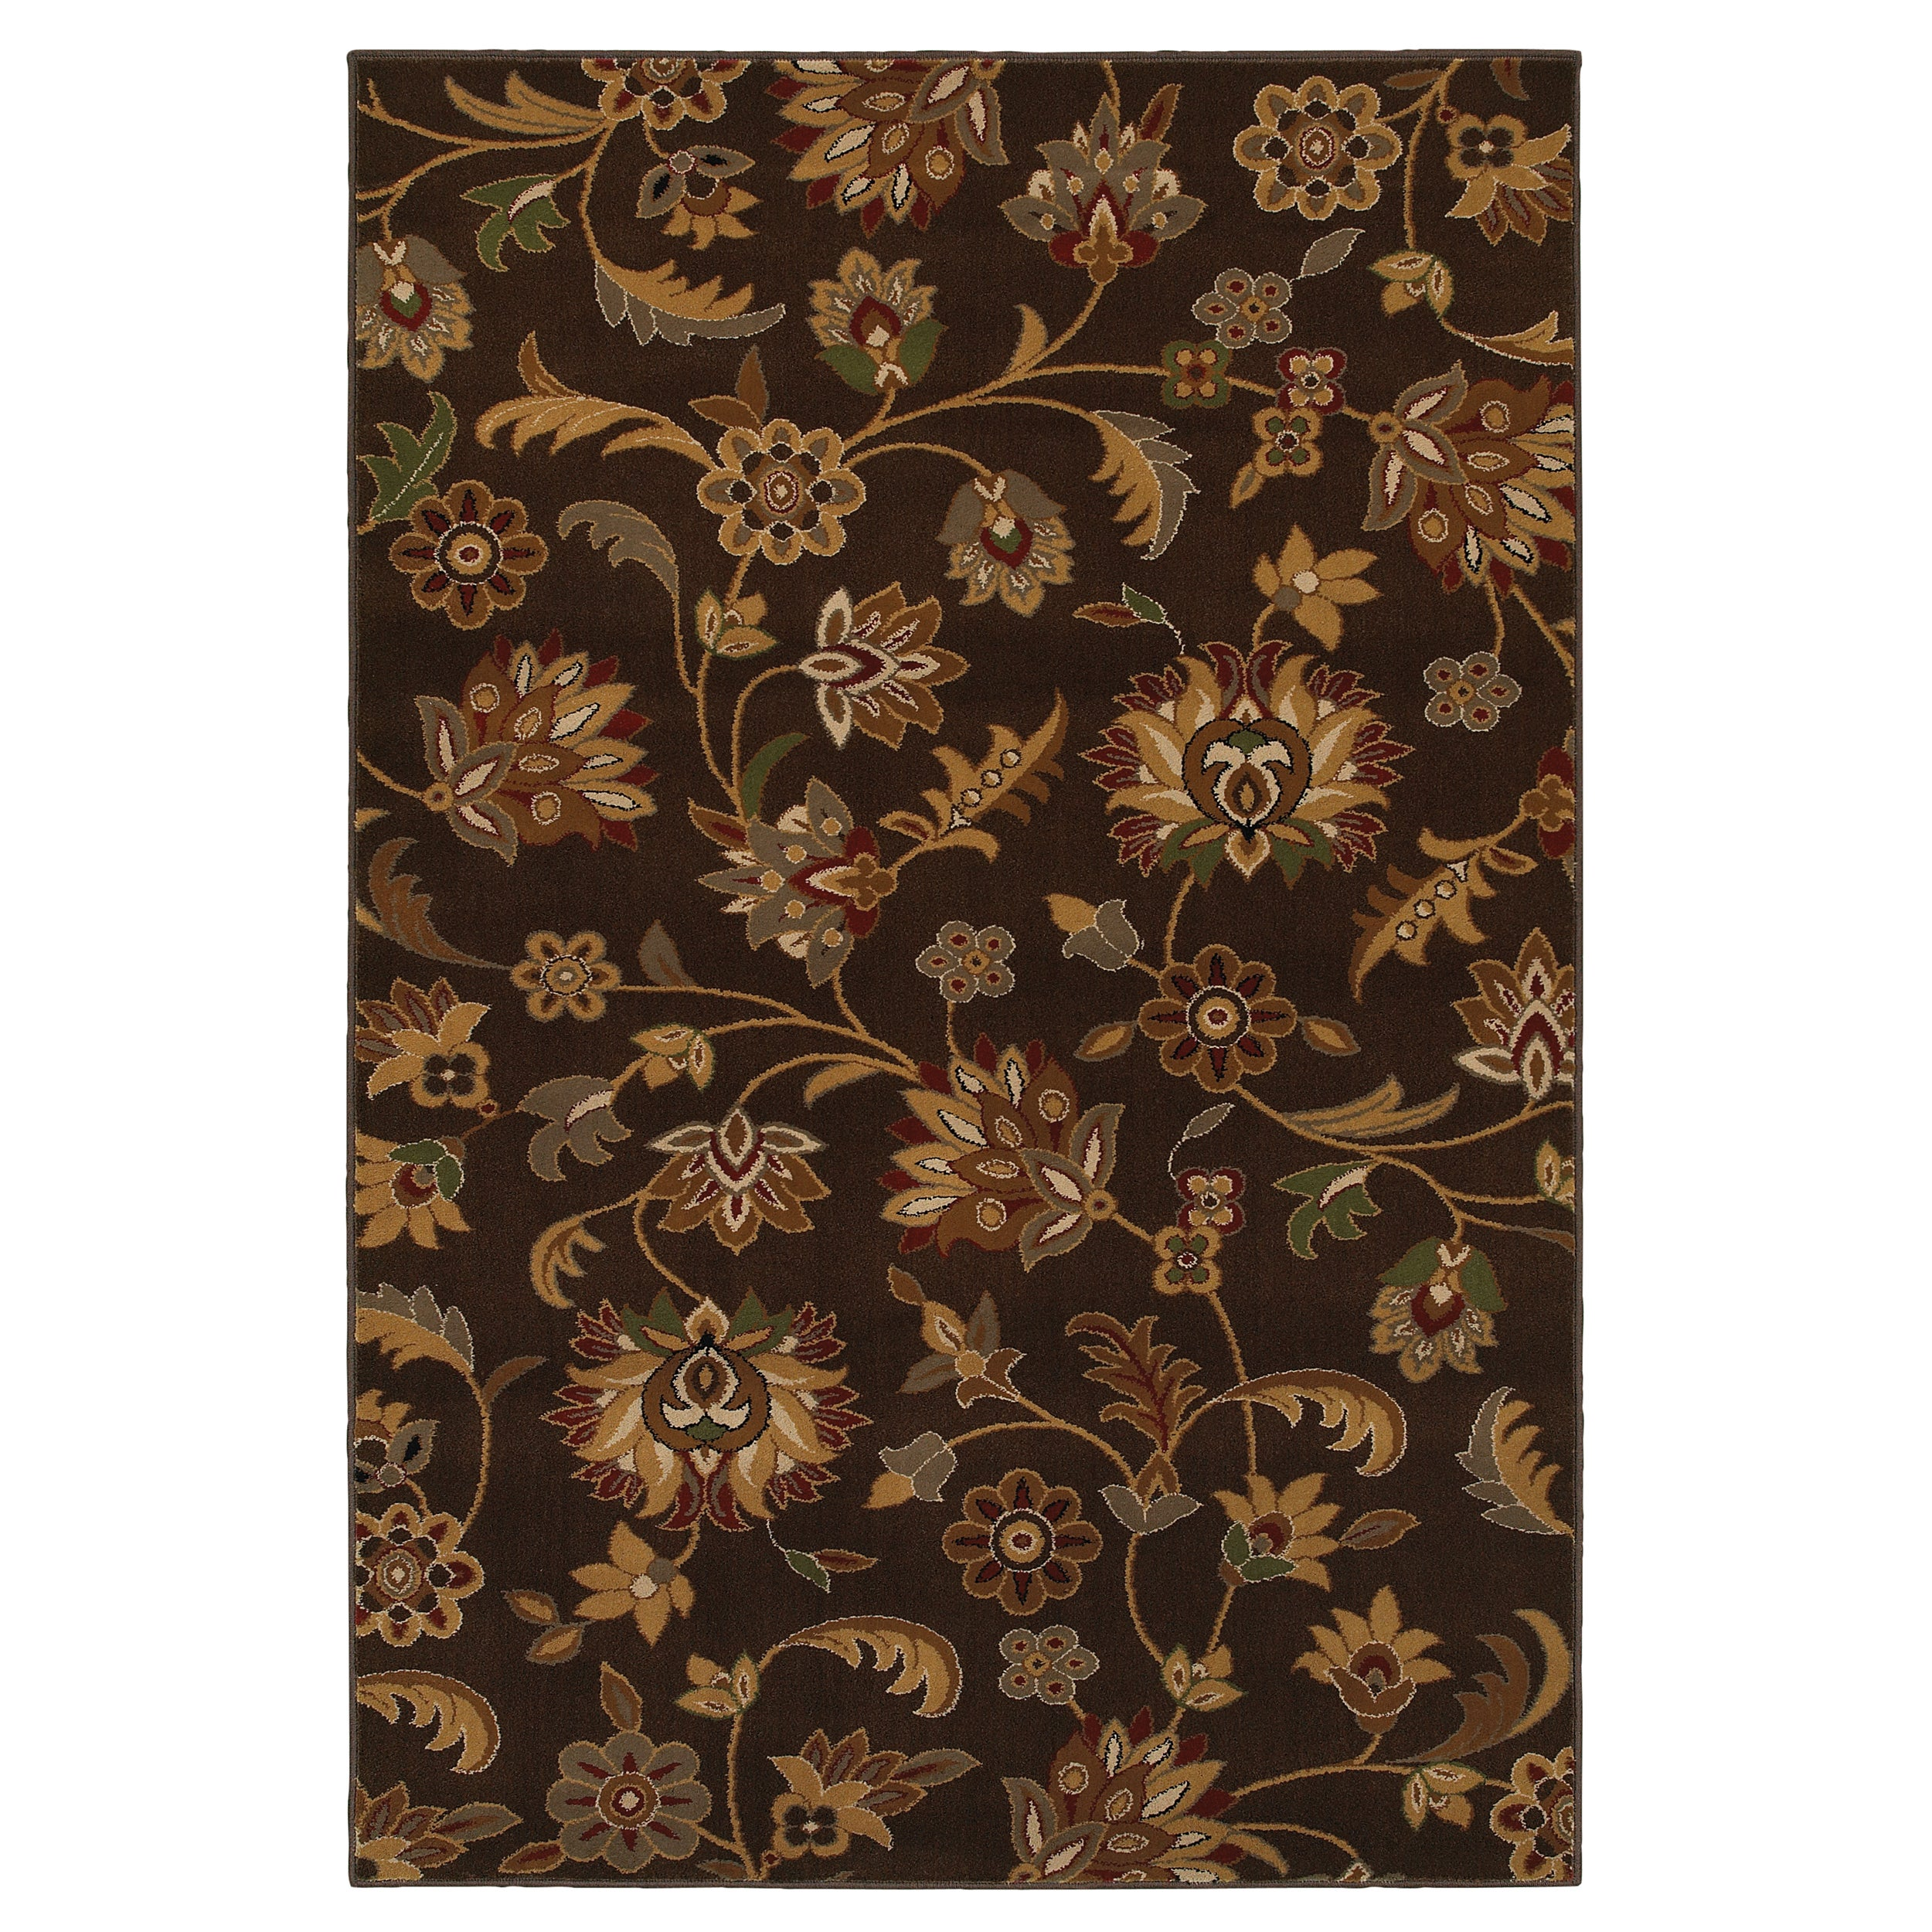 Concord Brown Floral Rug (3'4 x 5')